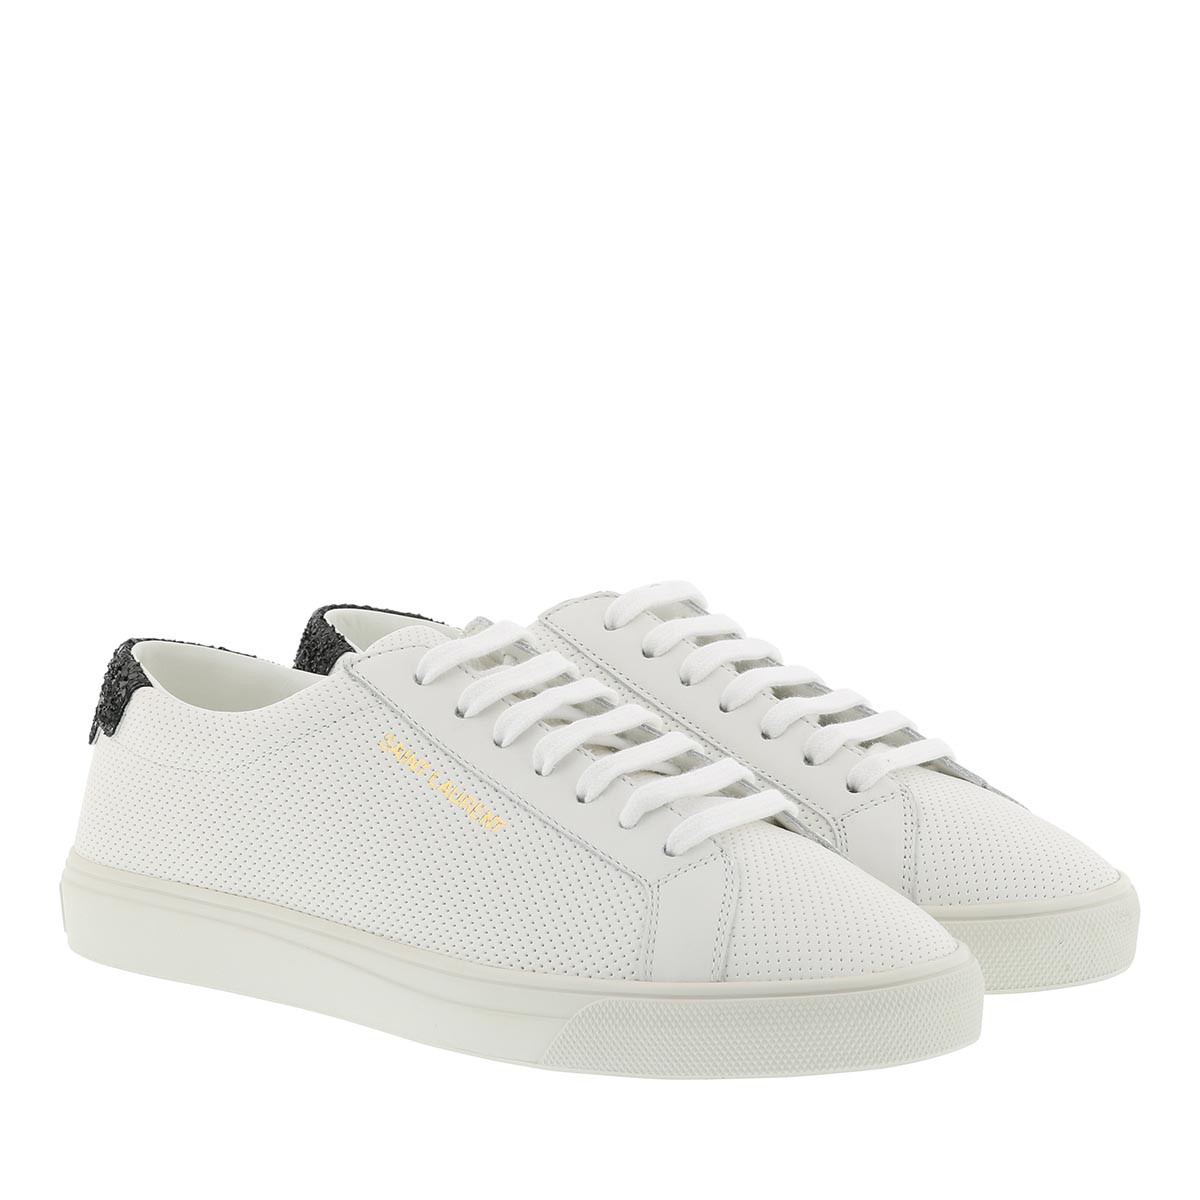 Saint Laurent Sneakers - Andy Sneaker Perforated Leather White - in weiß - für Damen